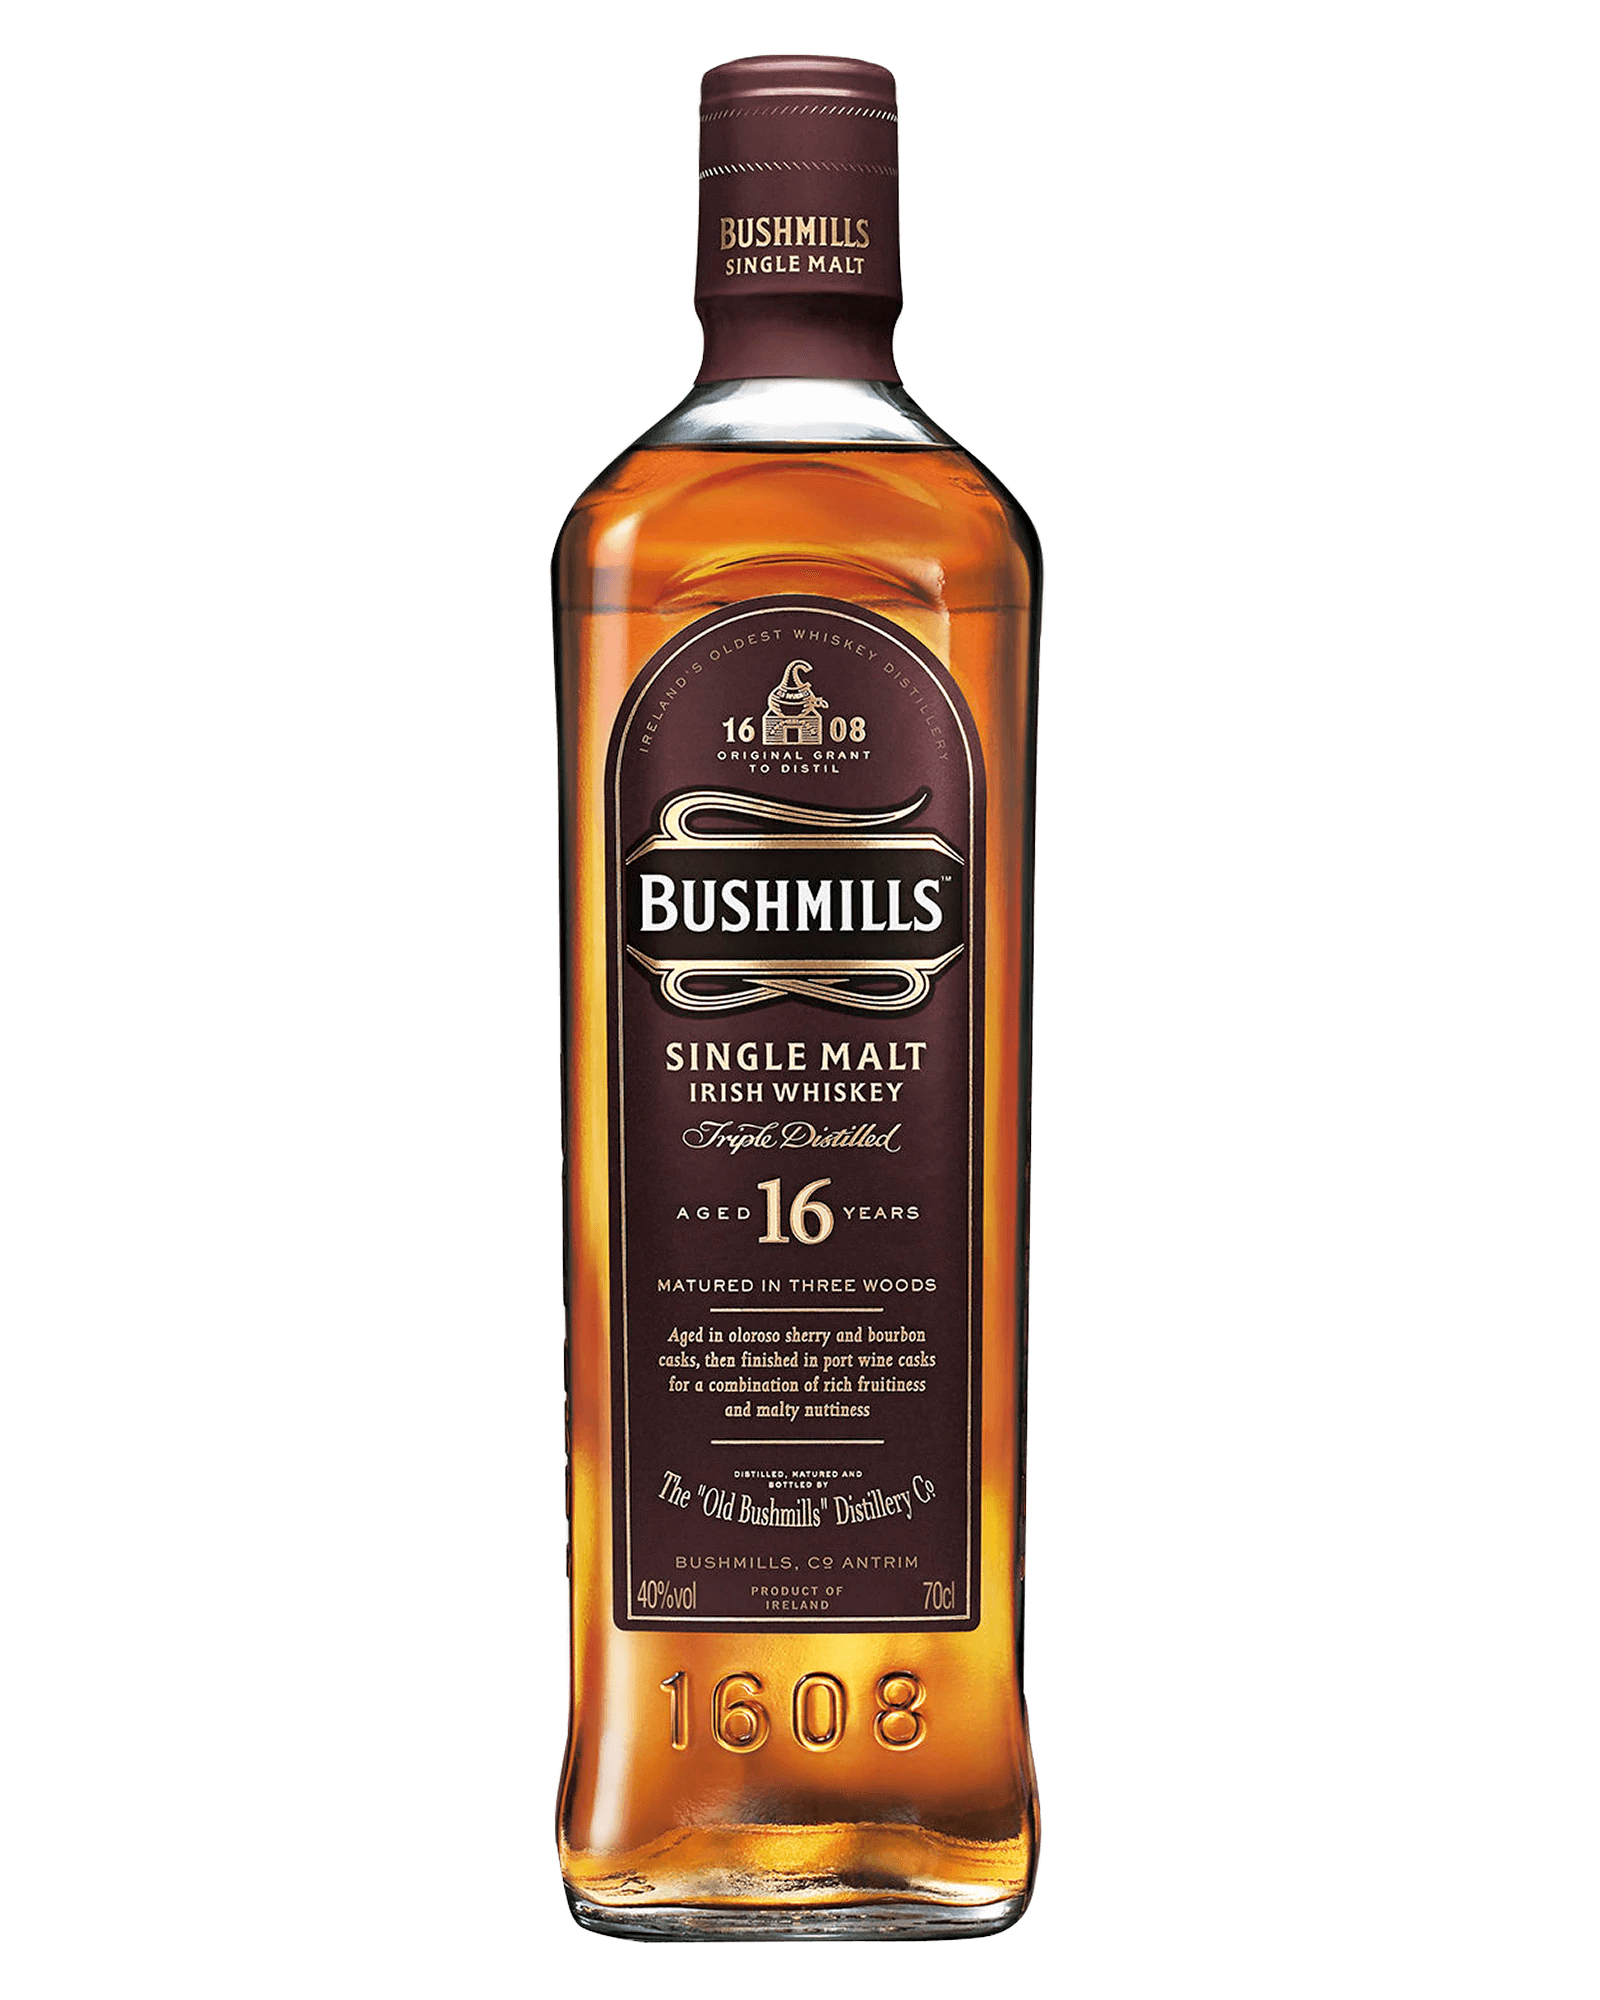 Bushmills 16 Year Old Single Malt Irish Whiskey (700ml)